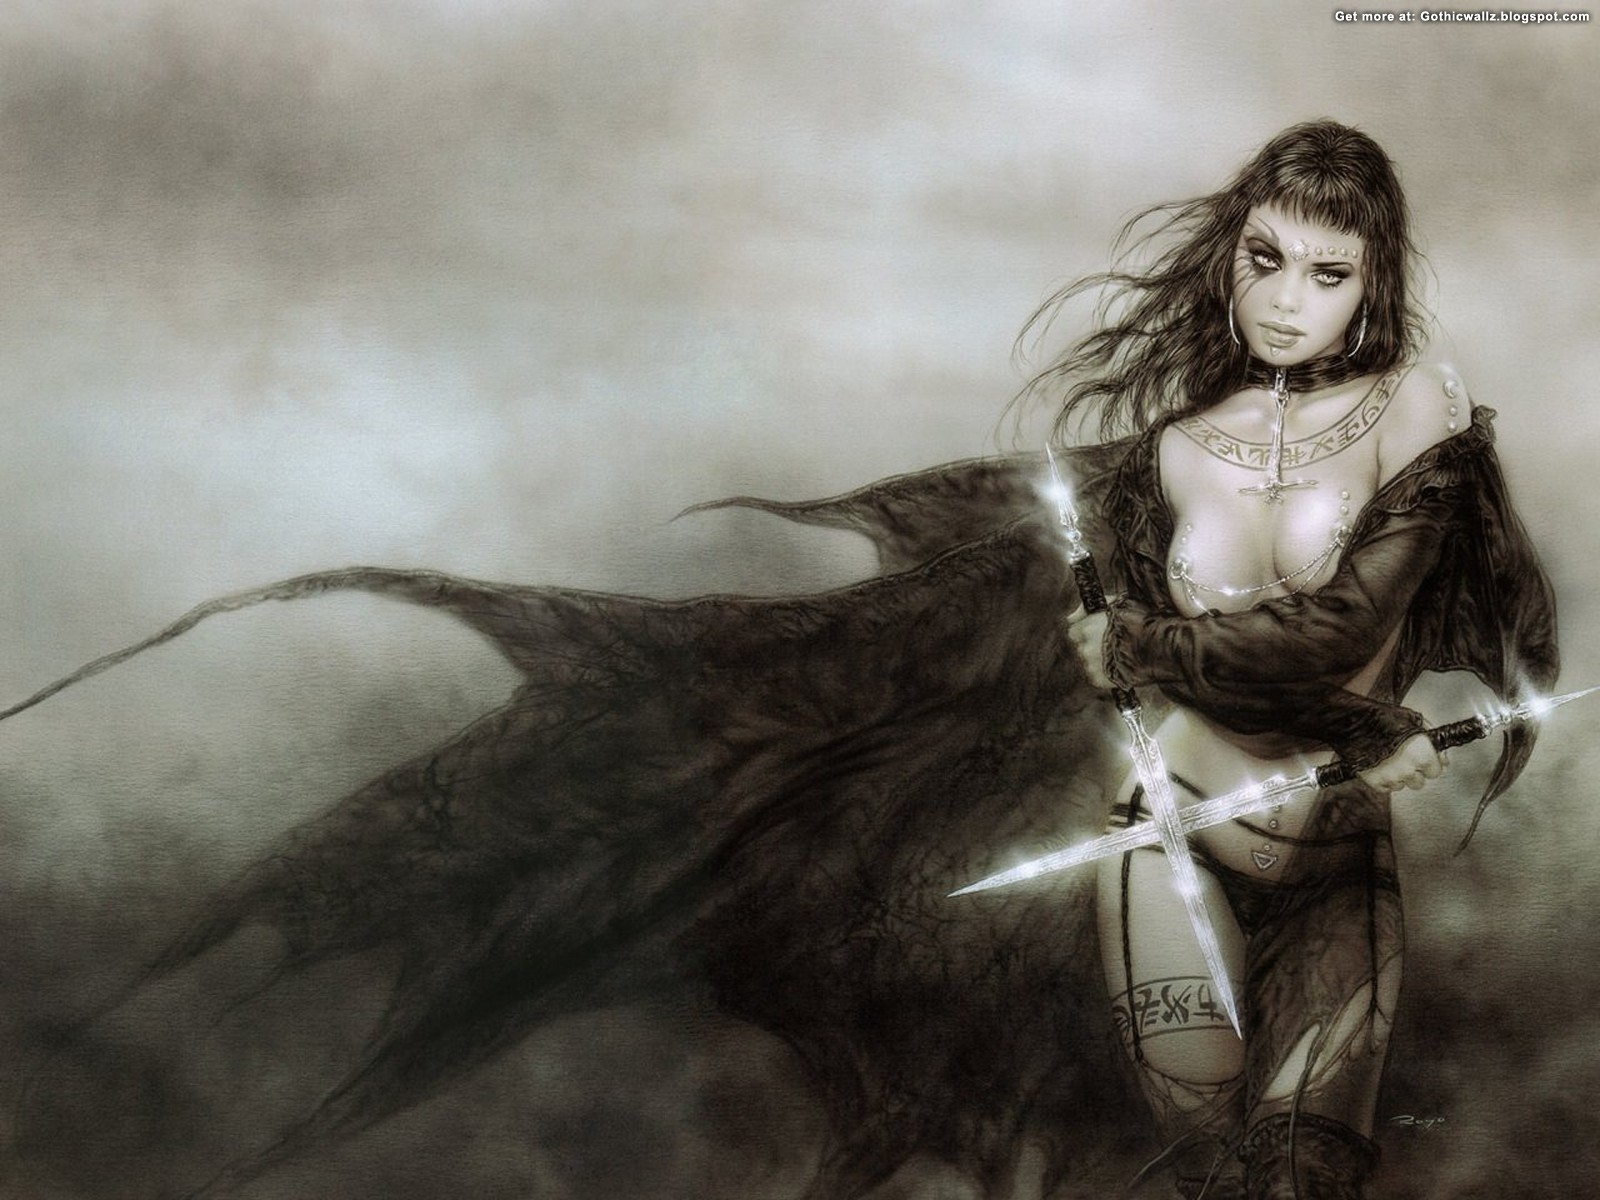 Warrior Girl | Gothic Wallpaper Download